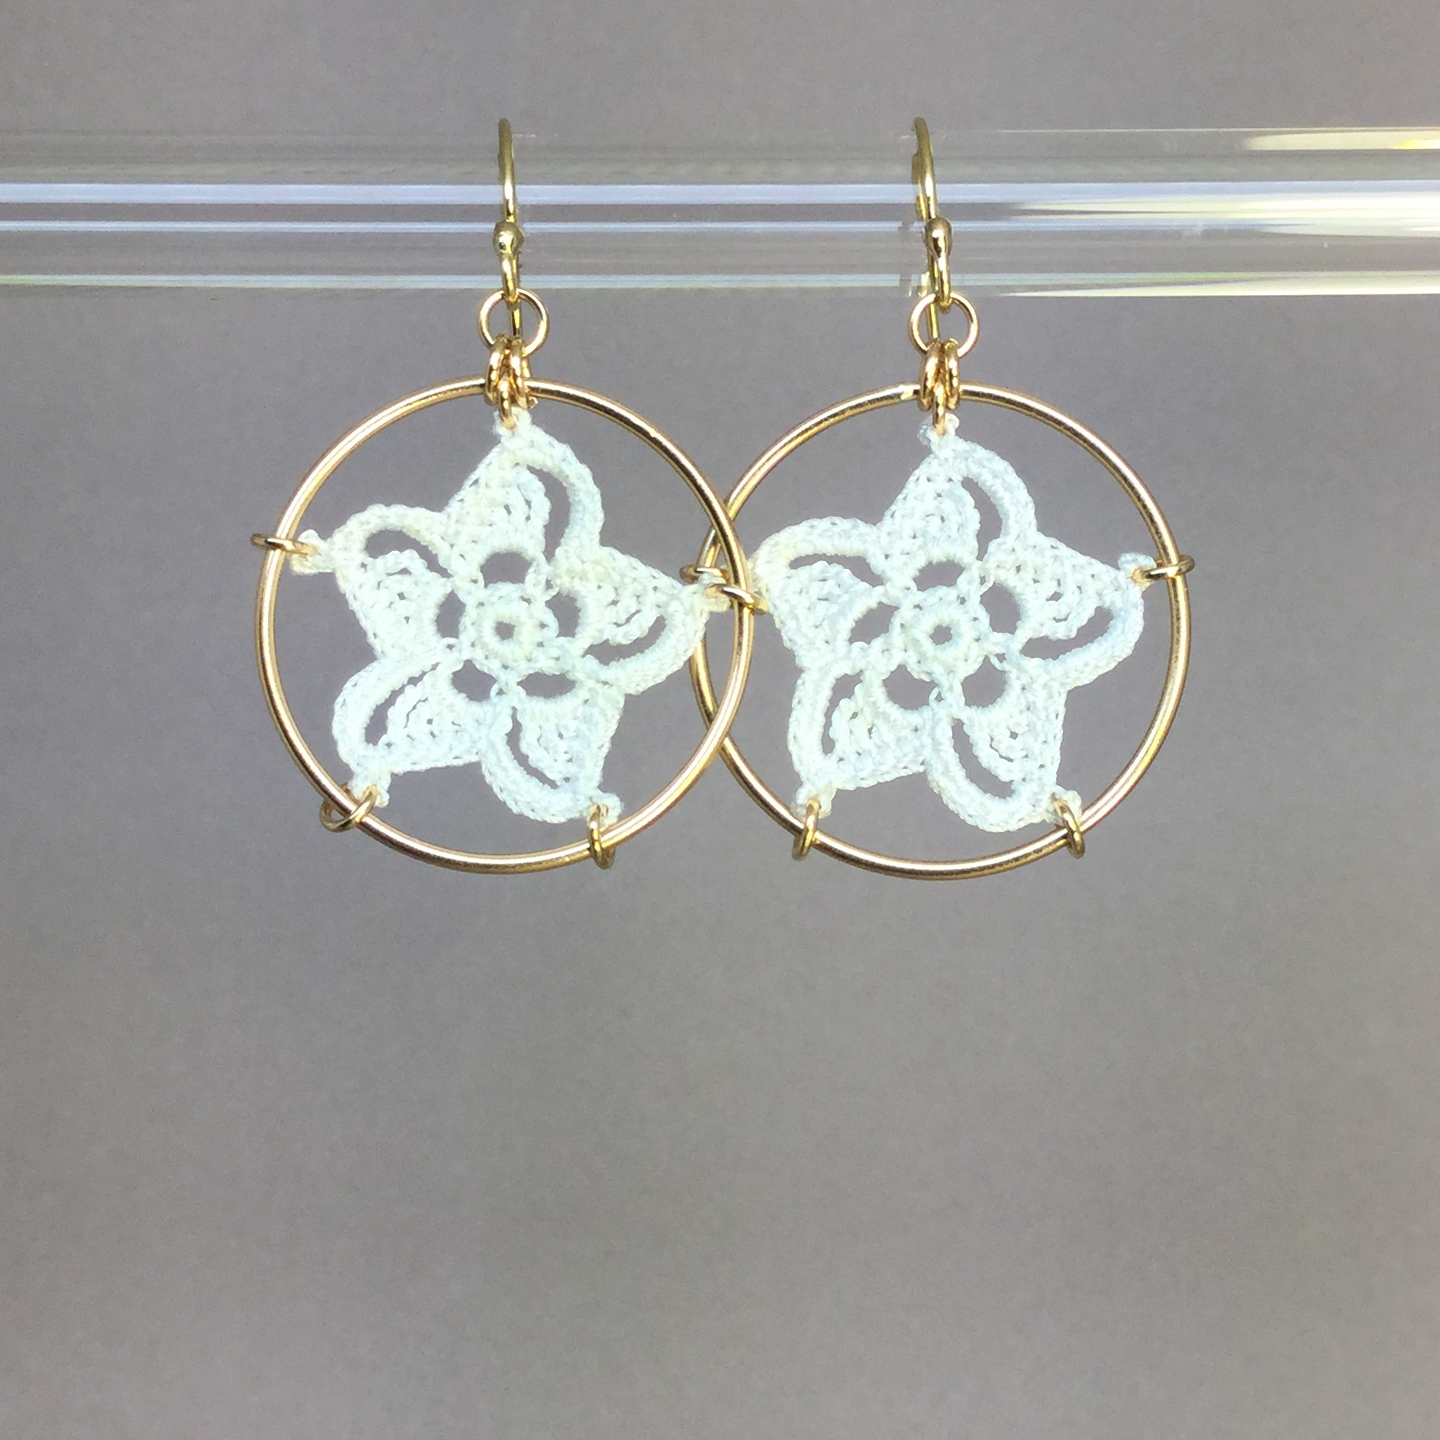 Pinwheel Star earrings, gold, white thread